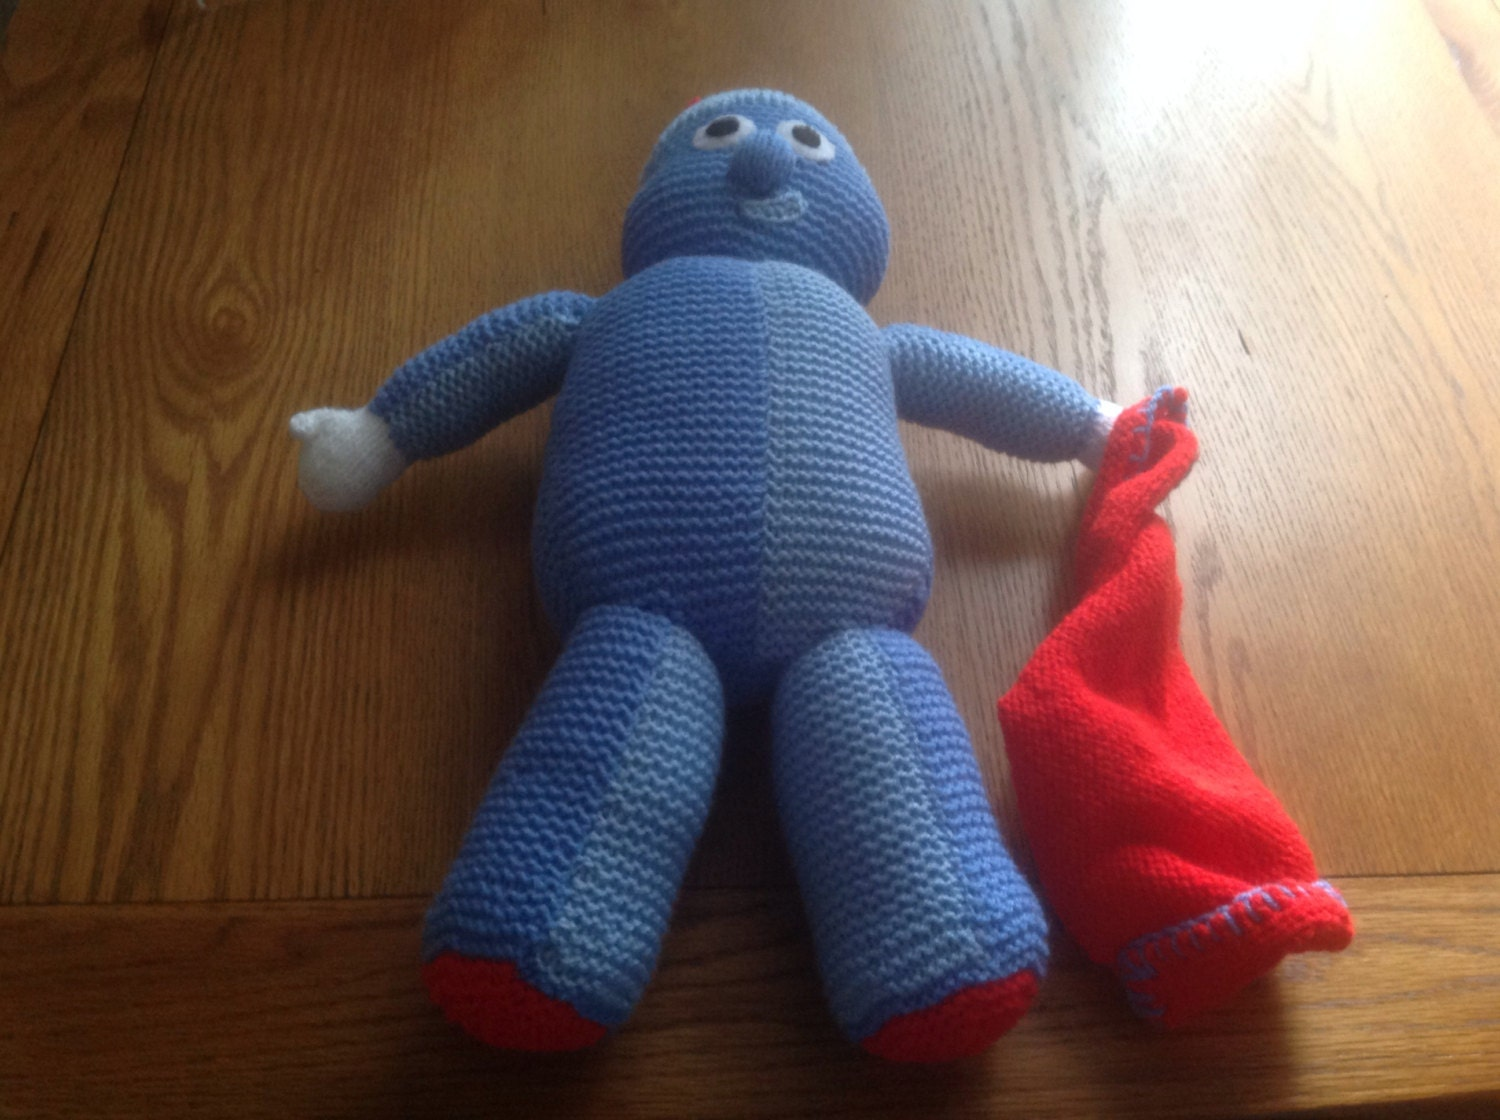 Knitting Pattern Iggle Piggle : Hand knitted IGGLE PIGGLE soft toy from In the